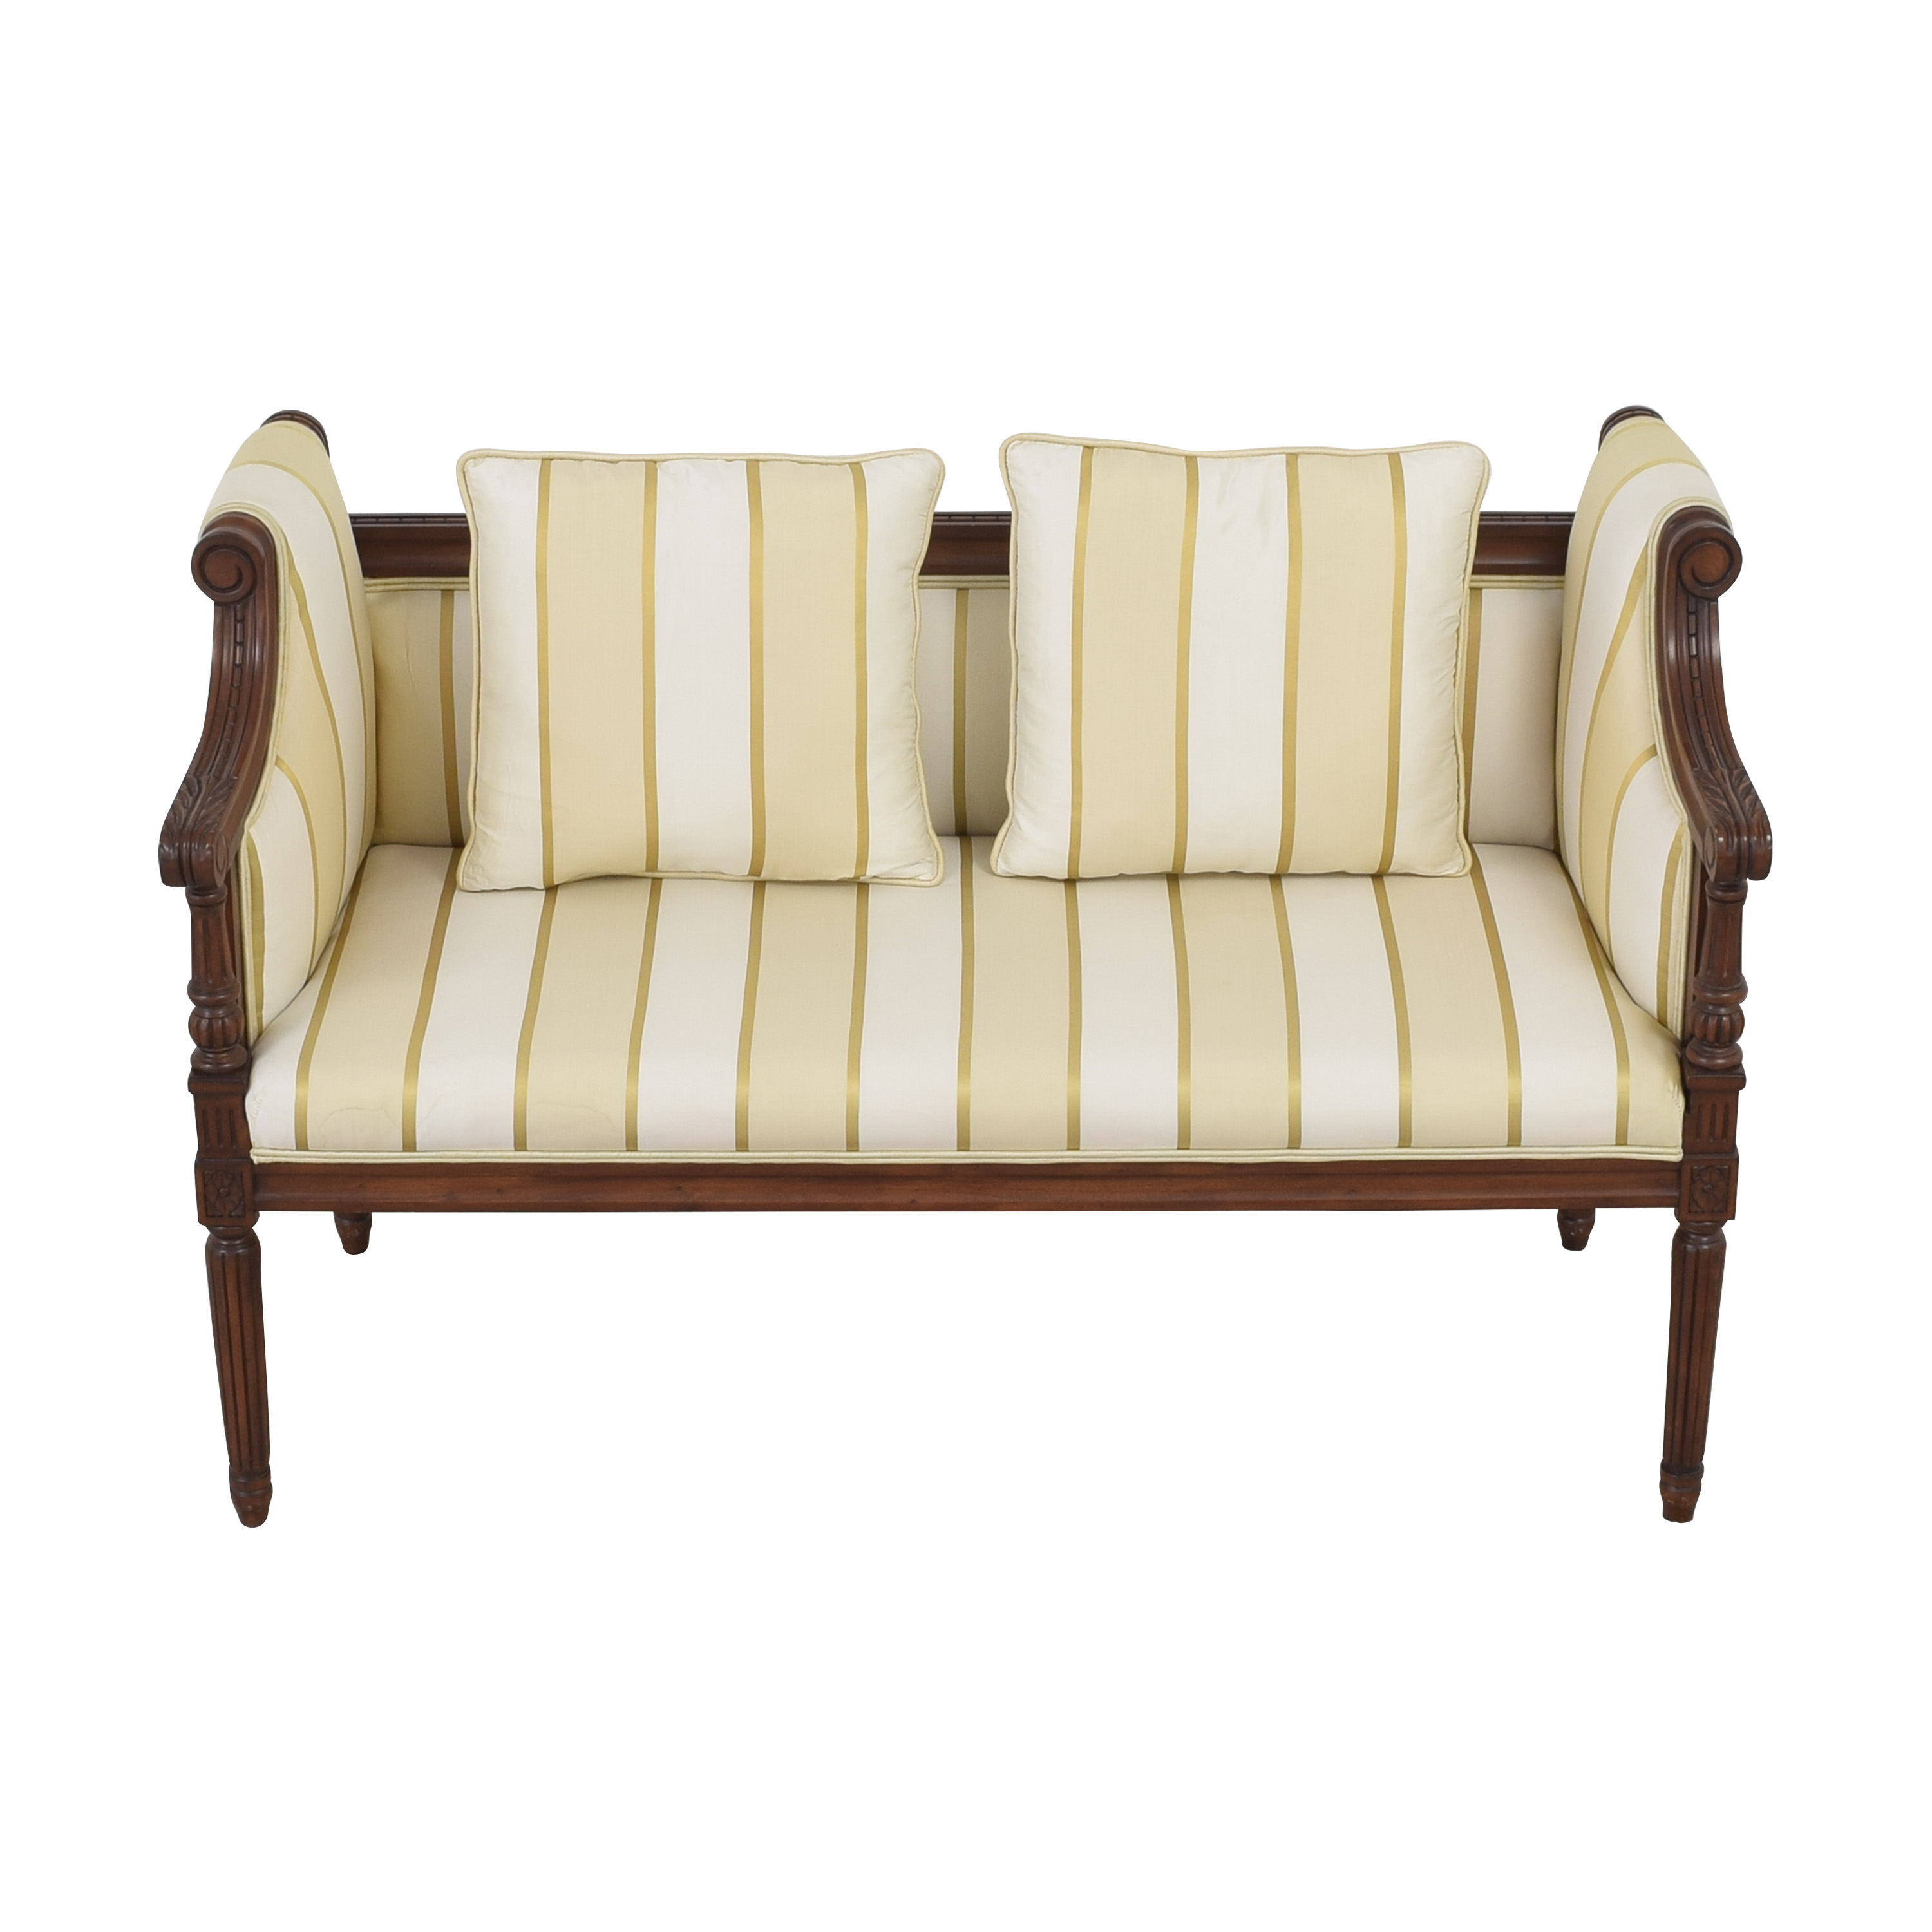 Upholstered Vintage Style Settee second hand